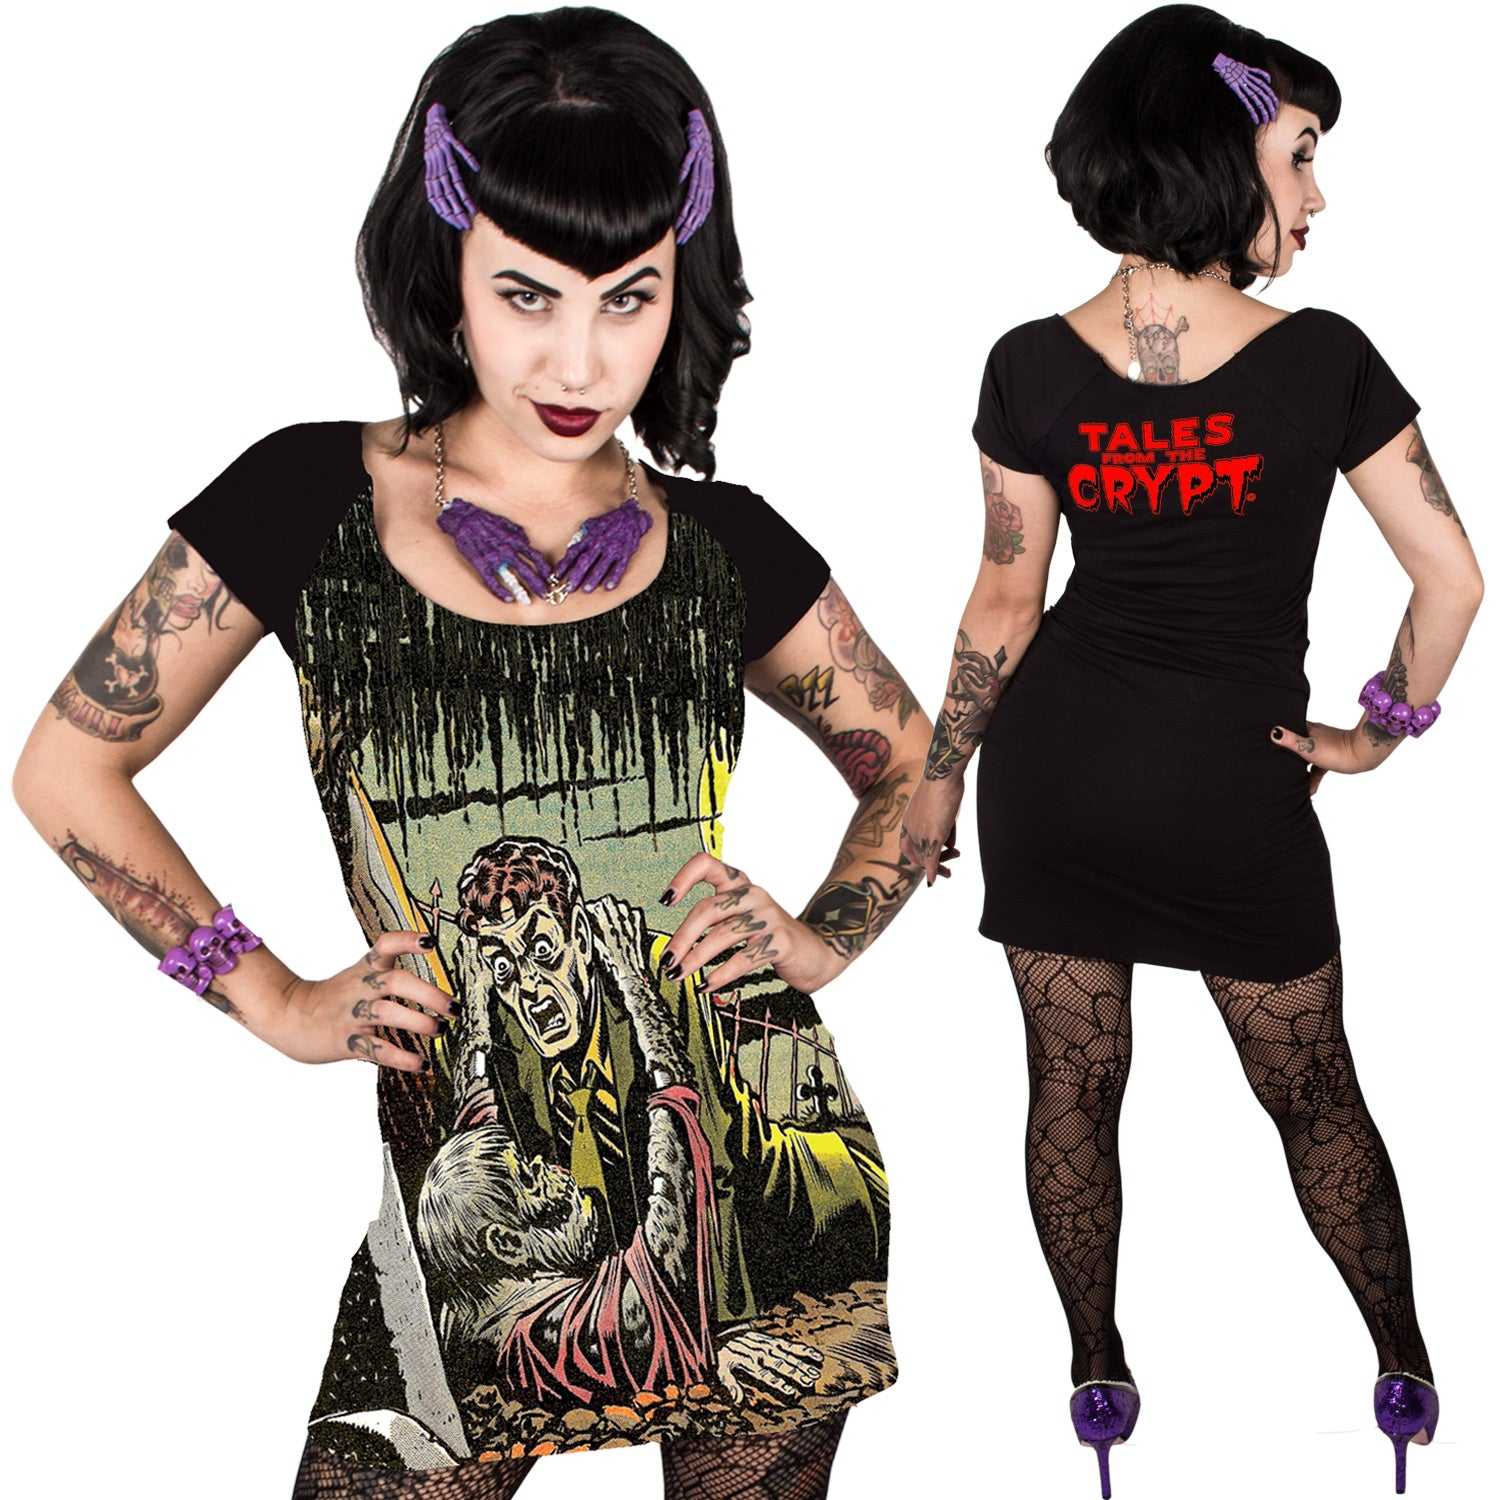 Tales From The Crypt Gravebuster Dress